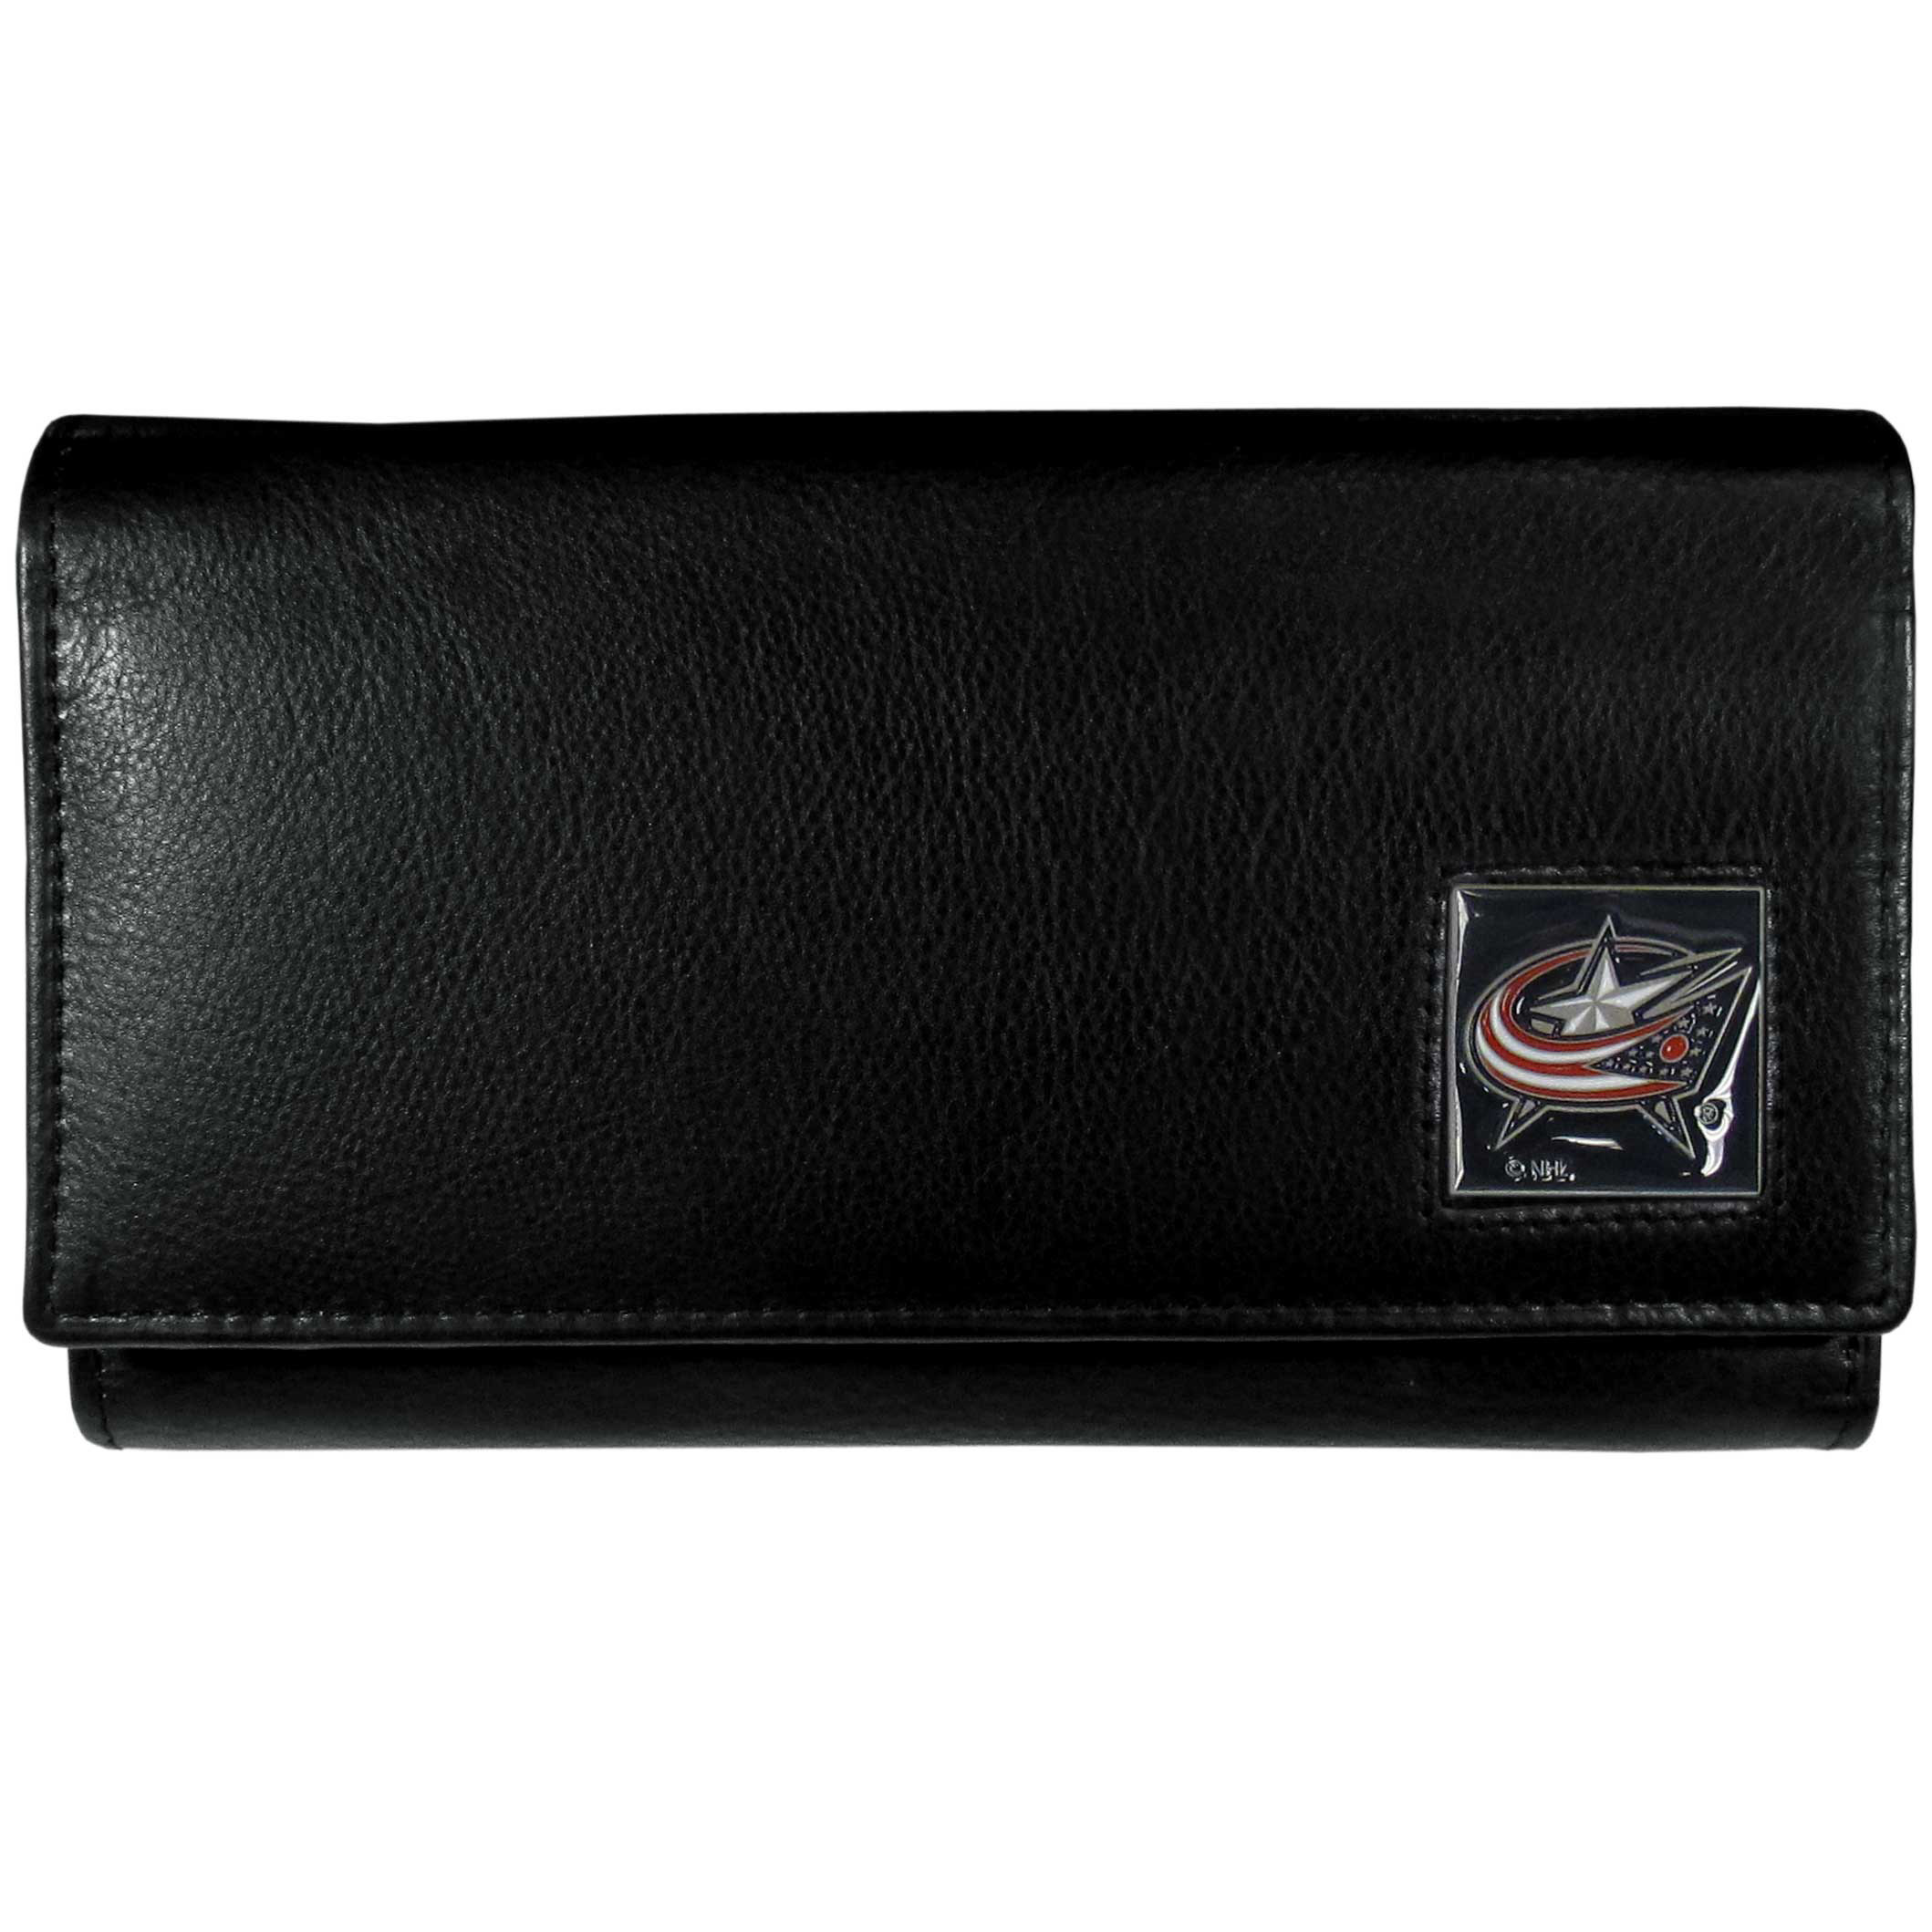 Columbus Blue Jackets® Leather Women's Wallet - This genuine leather women's pocketbook features 9 credit card slots, a windowed ID slot, spacious front pocket, inner pocket and zippered coin pocket. The front of the pocketbook has a hand painted metal square with the Columbus Blue Jackets® primary logo.